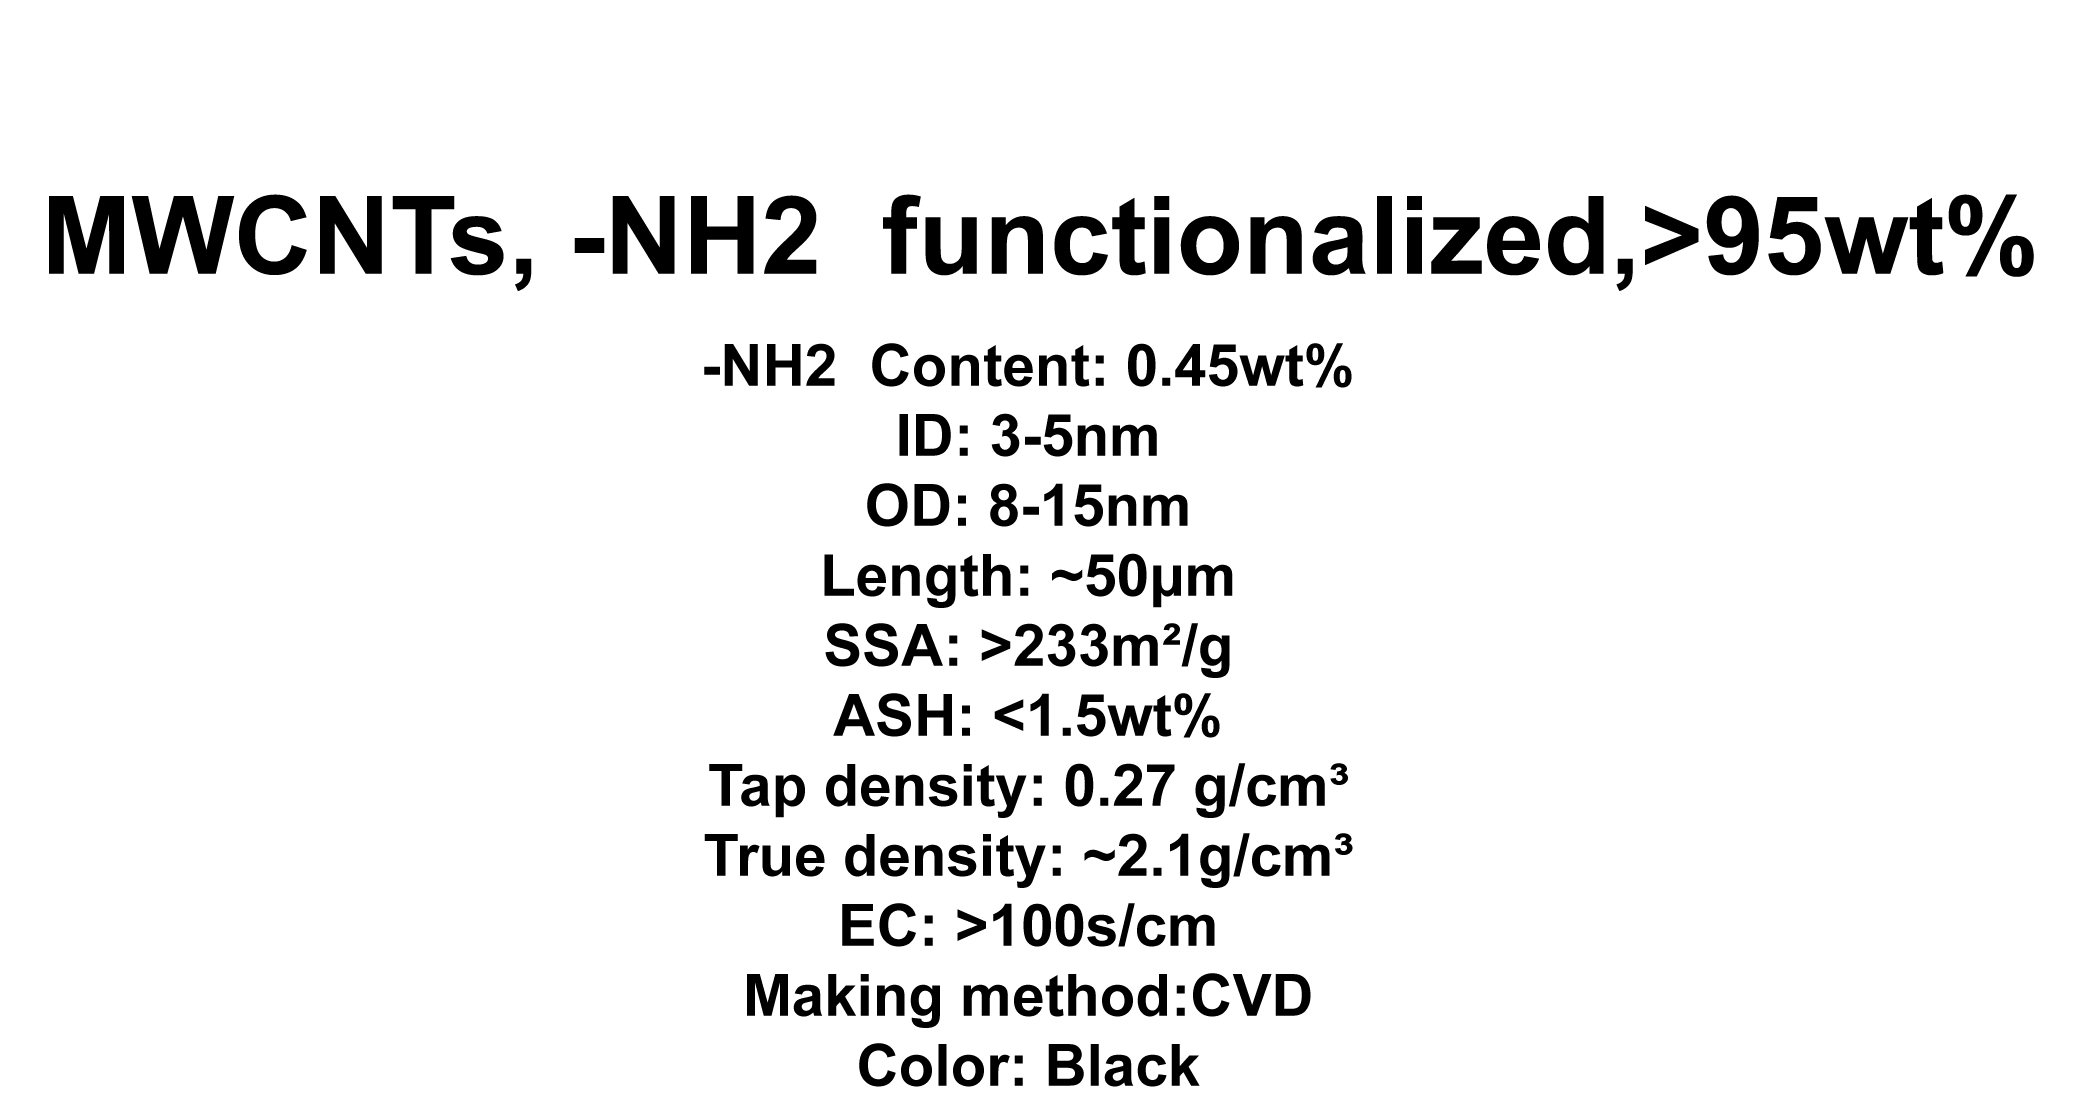 MWCNTs, -NH2  functionalized (TNMN2)